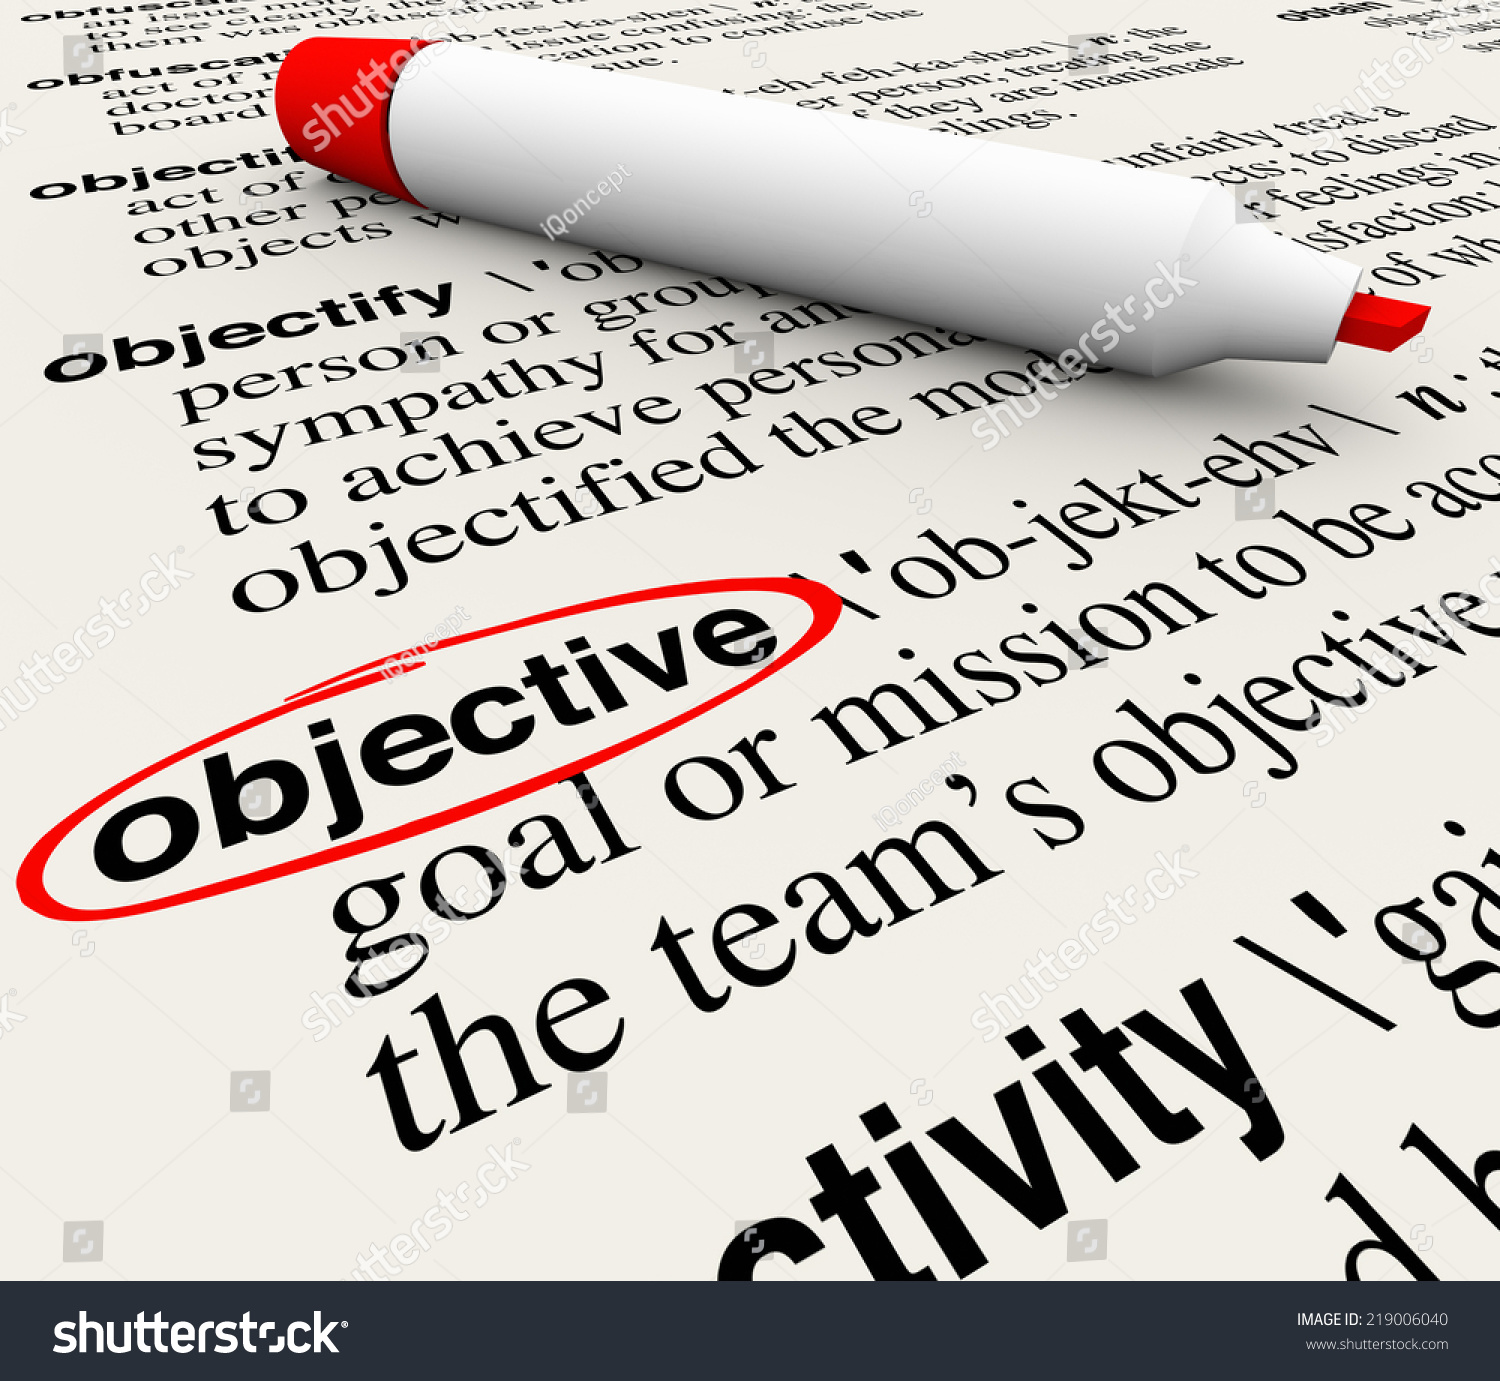 Objective Definition Gallery